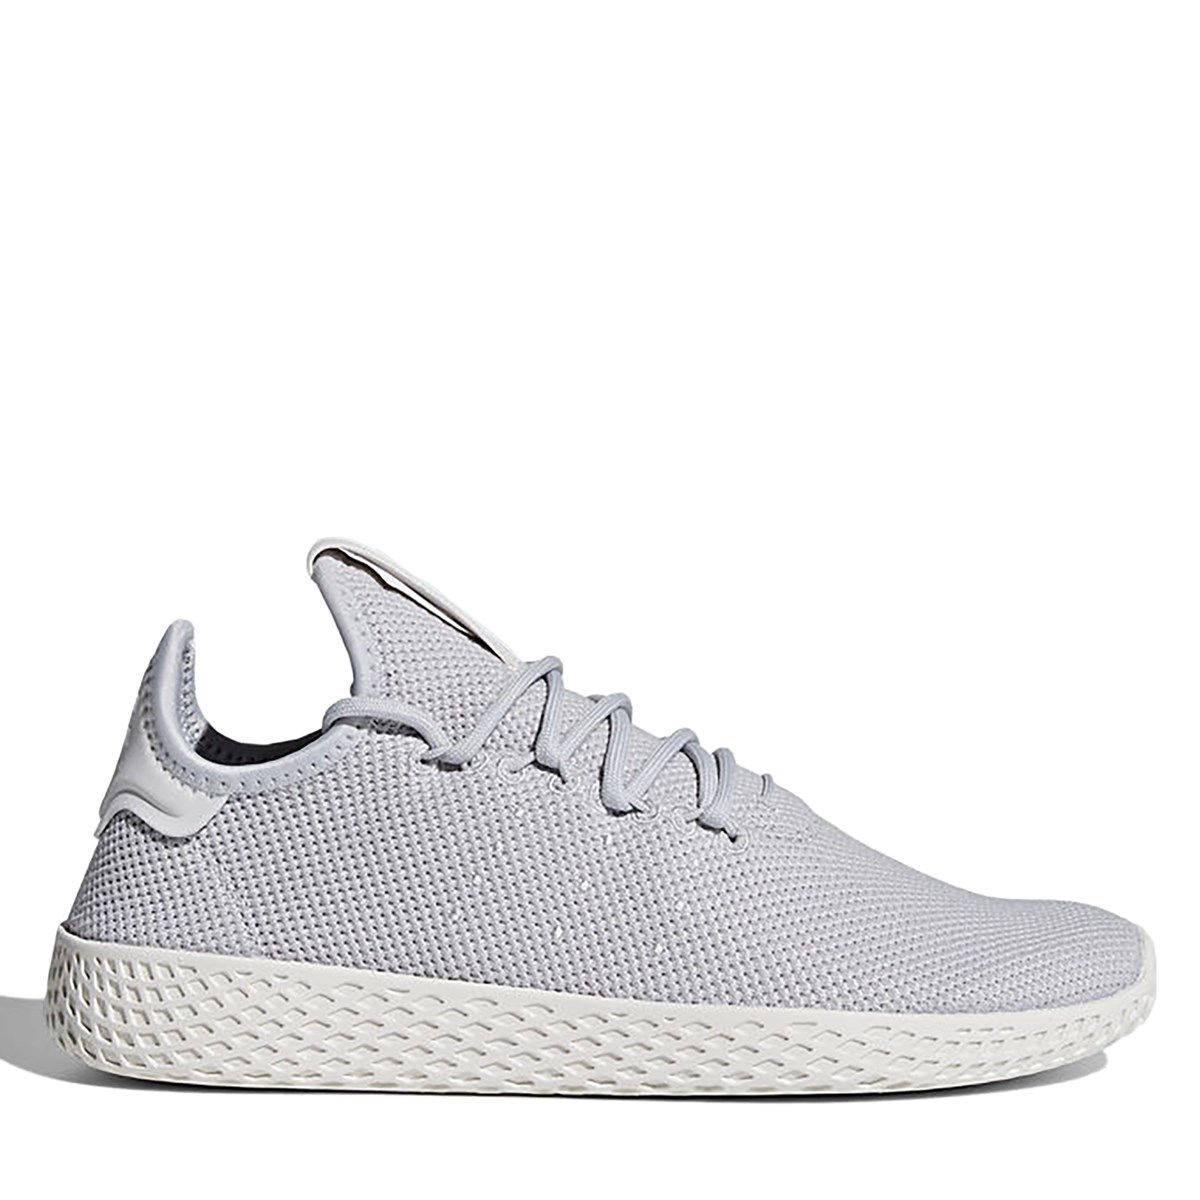 a881b5e00 Women s Pharrell Williams Tennis Hu Grey Shoes. Previous. default view